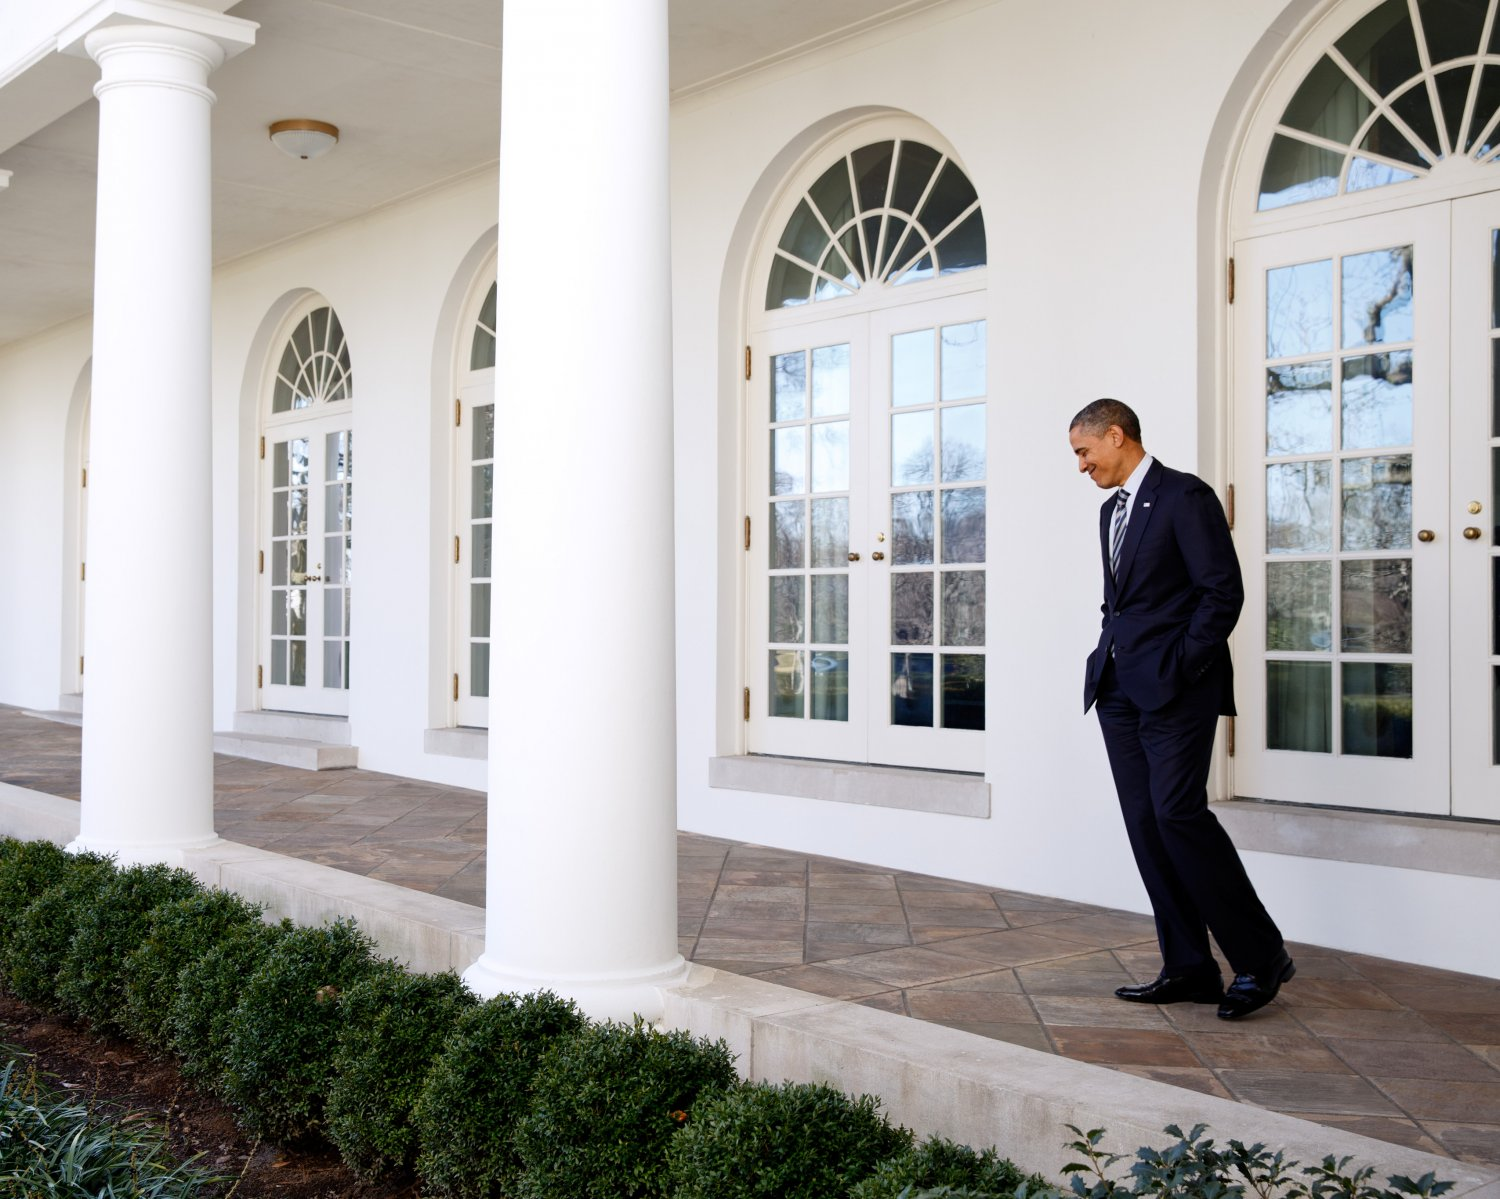 PRESIDENT BARACK OBAMA WALKS ON THE WHITE HOUSE COLONNADE - 8X10 PHOTO (ZY-345)